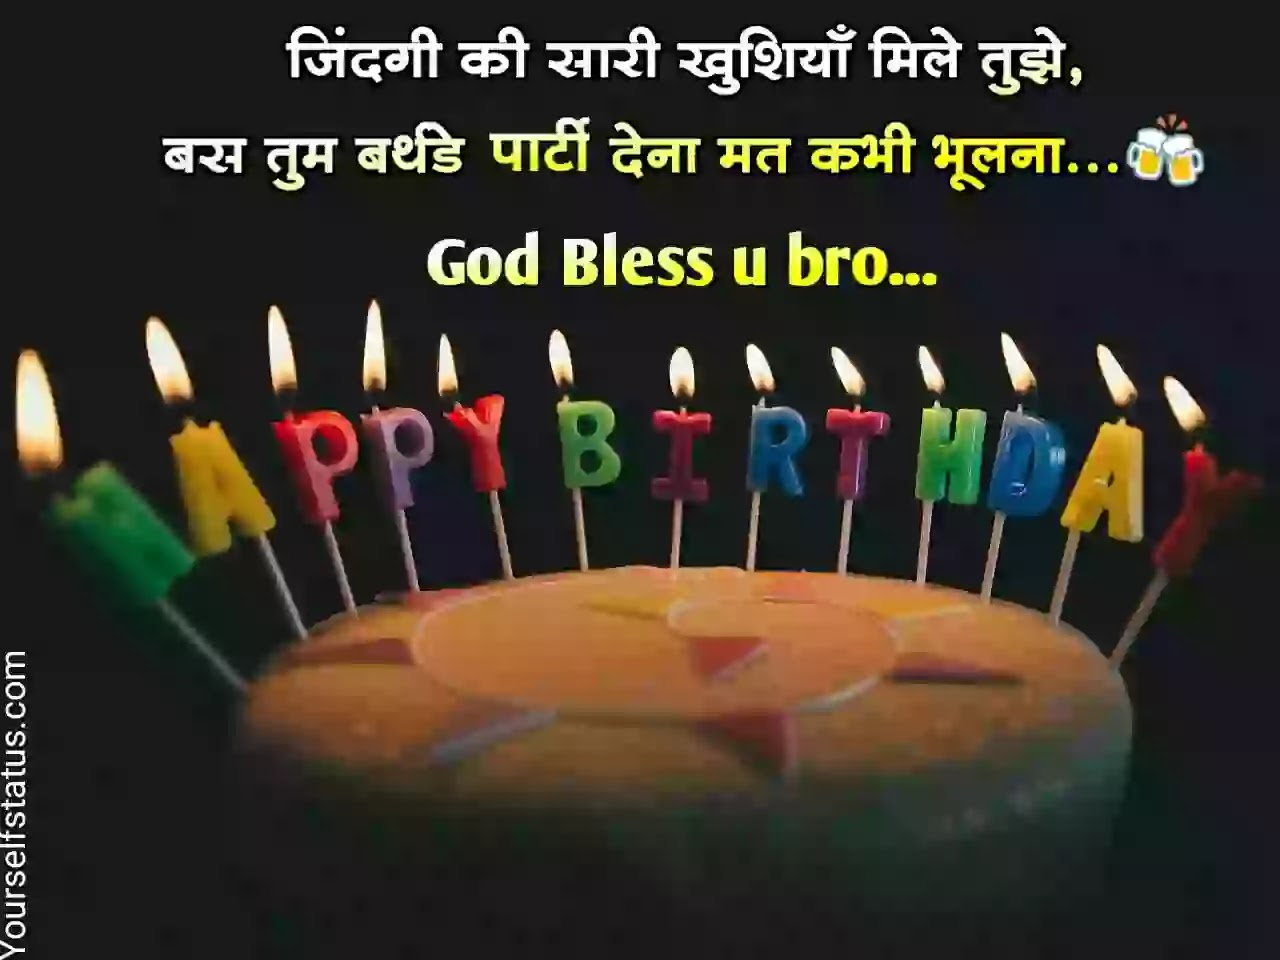 Funny-birthday-wishes-for-brother-hindi